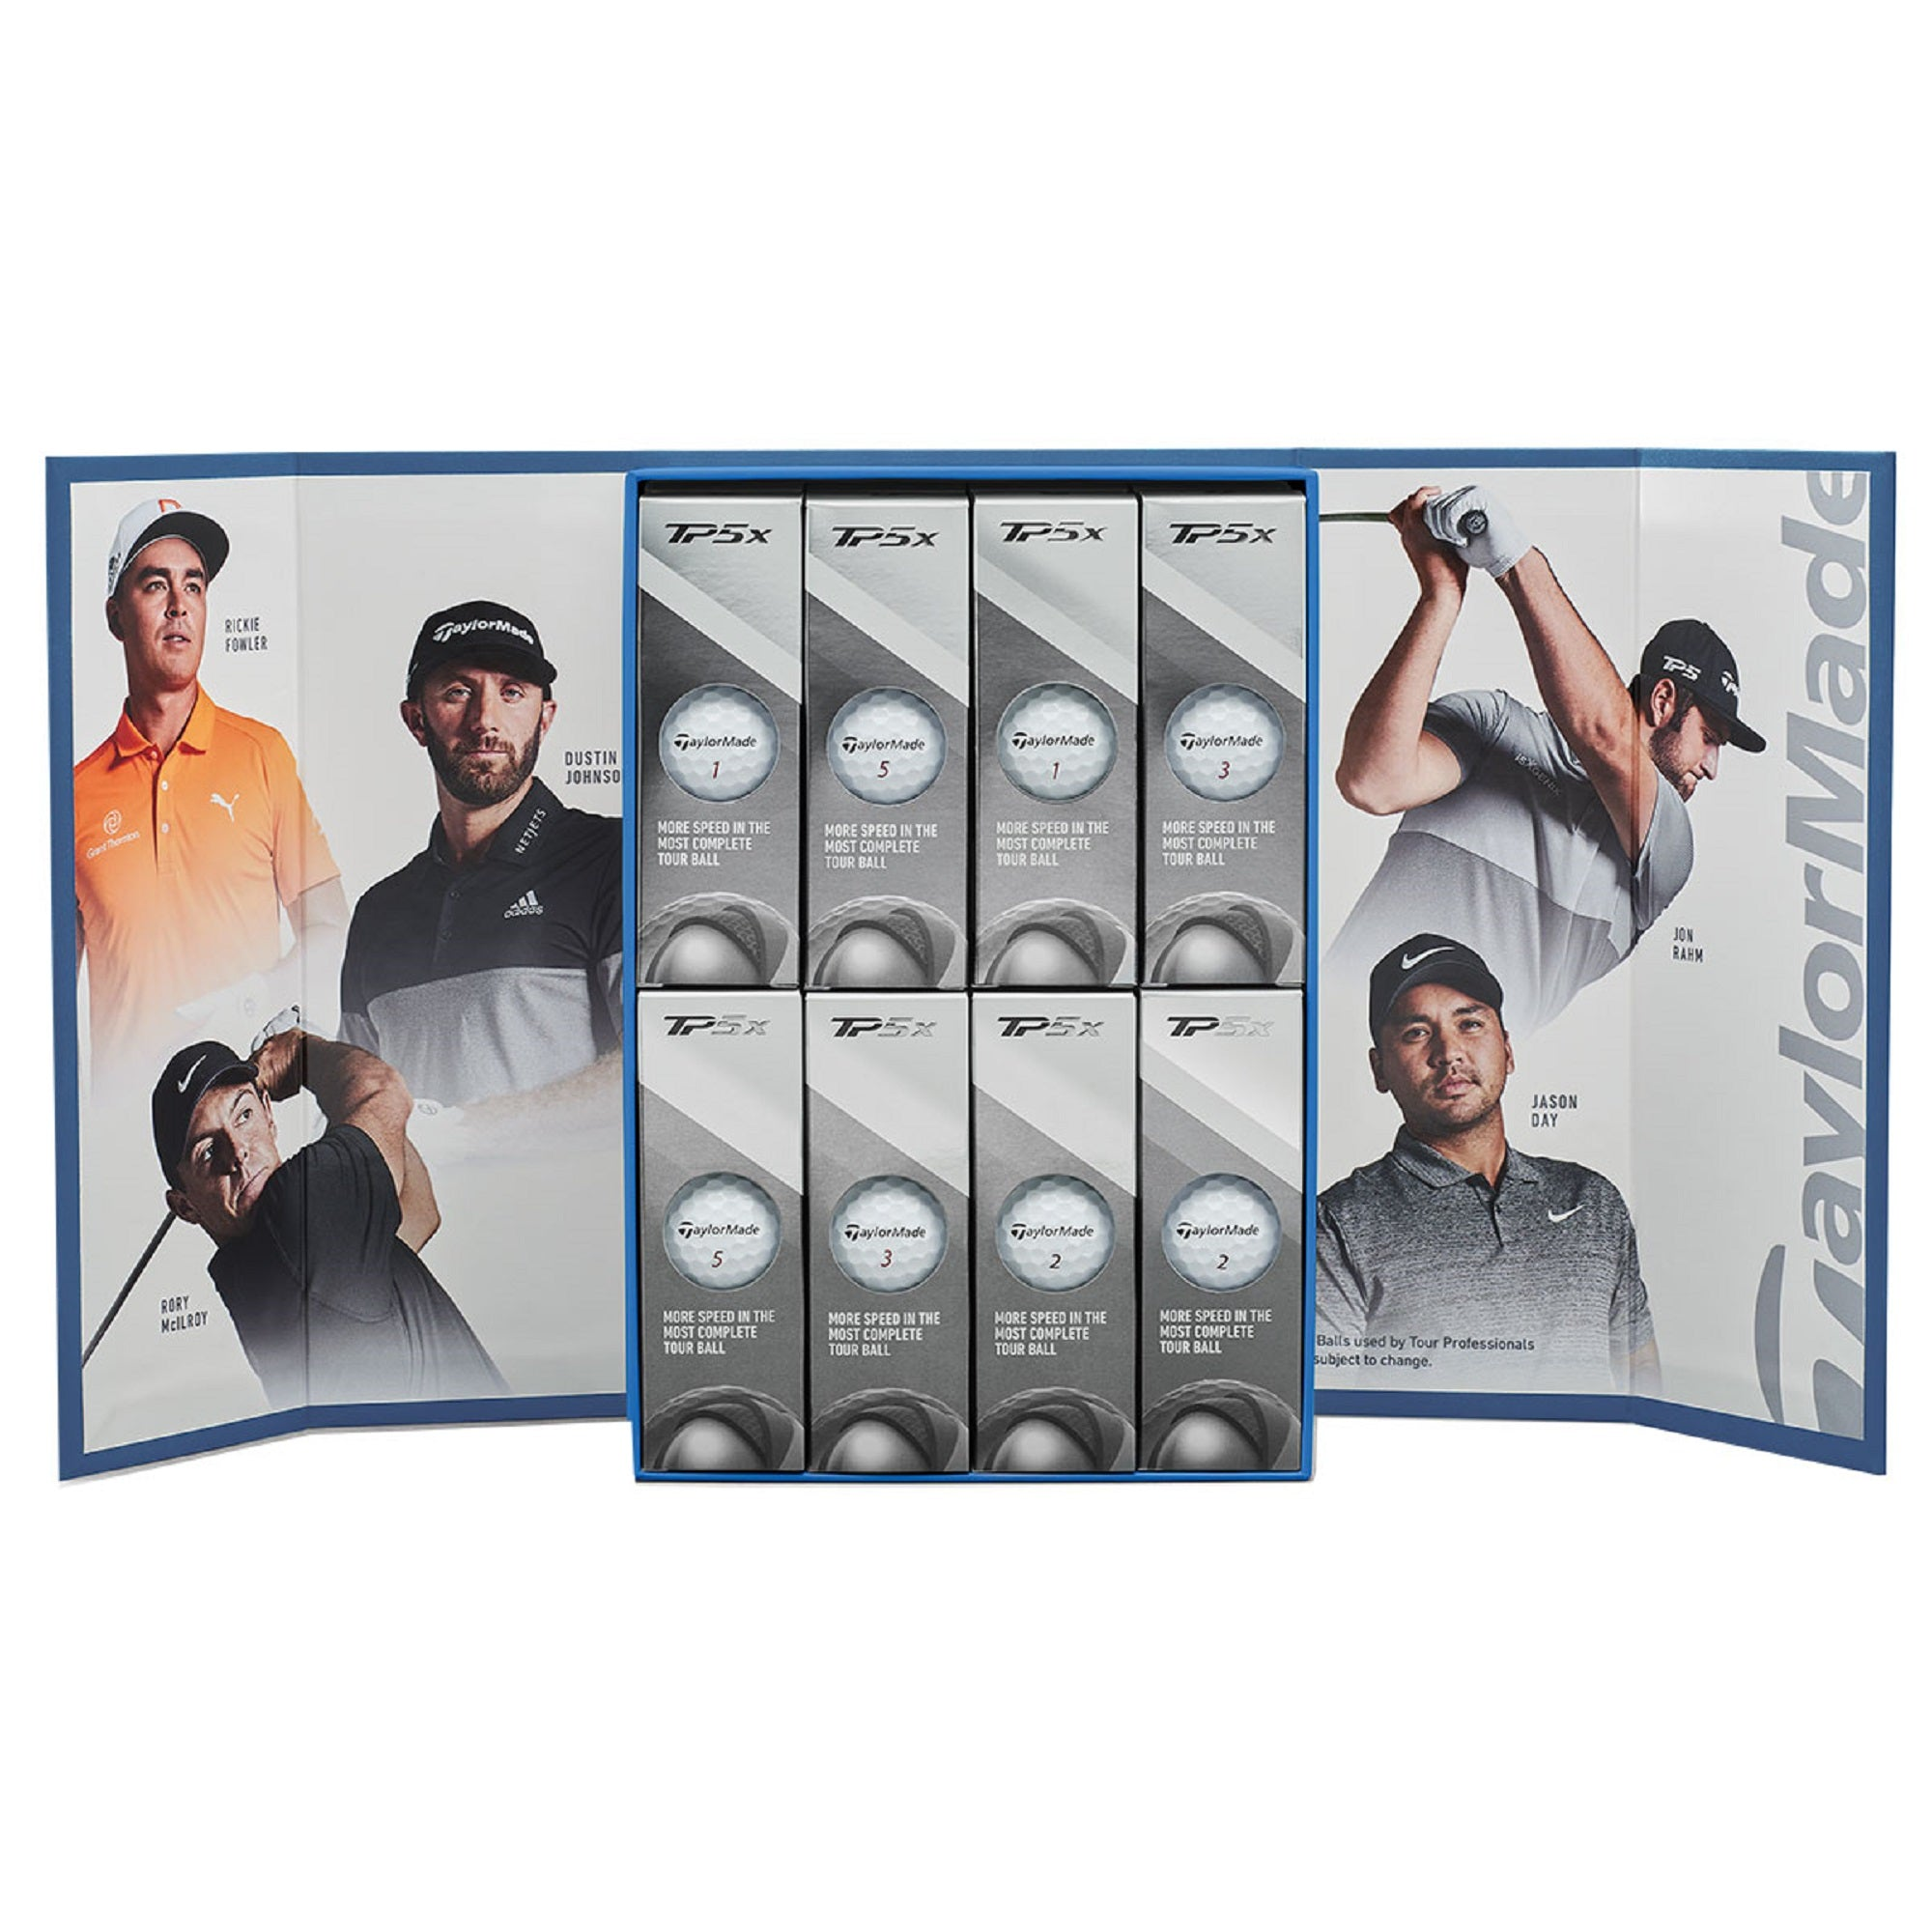 TaylorMade TP5x Athlete Edition Golf Balls - 4 Dozen For 3